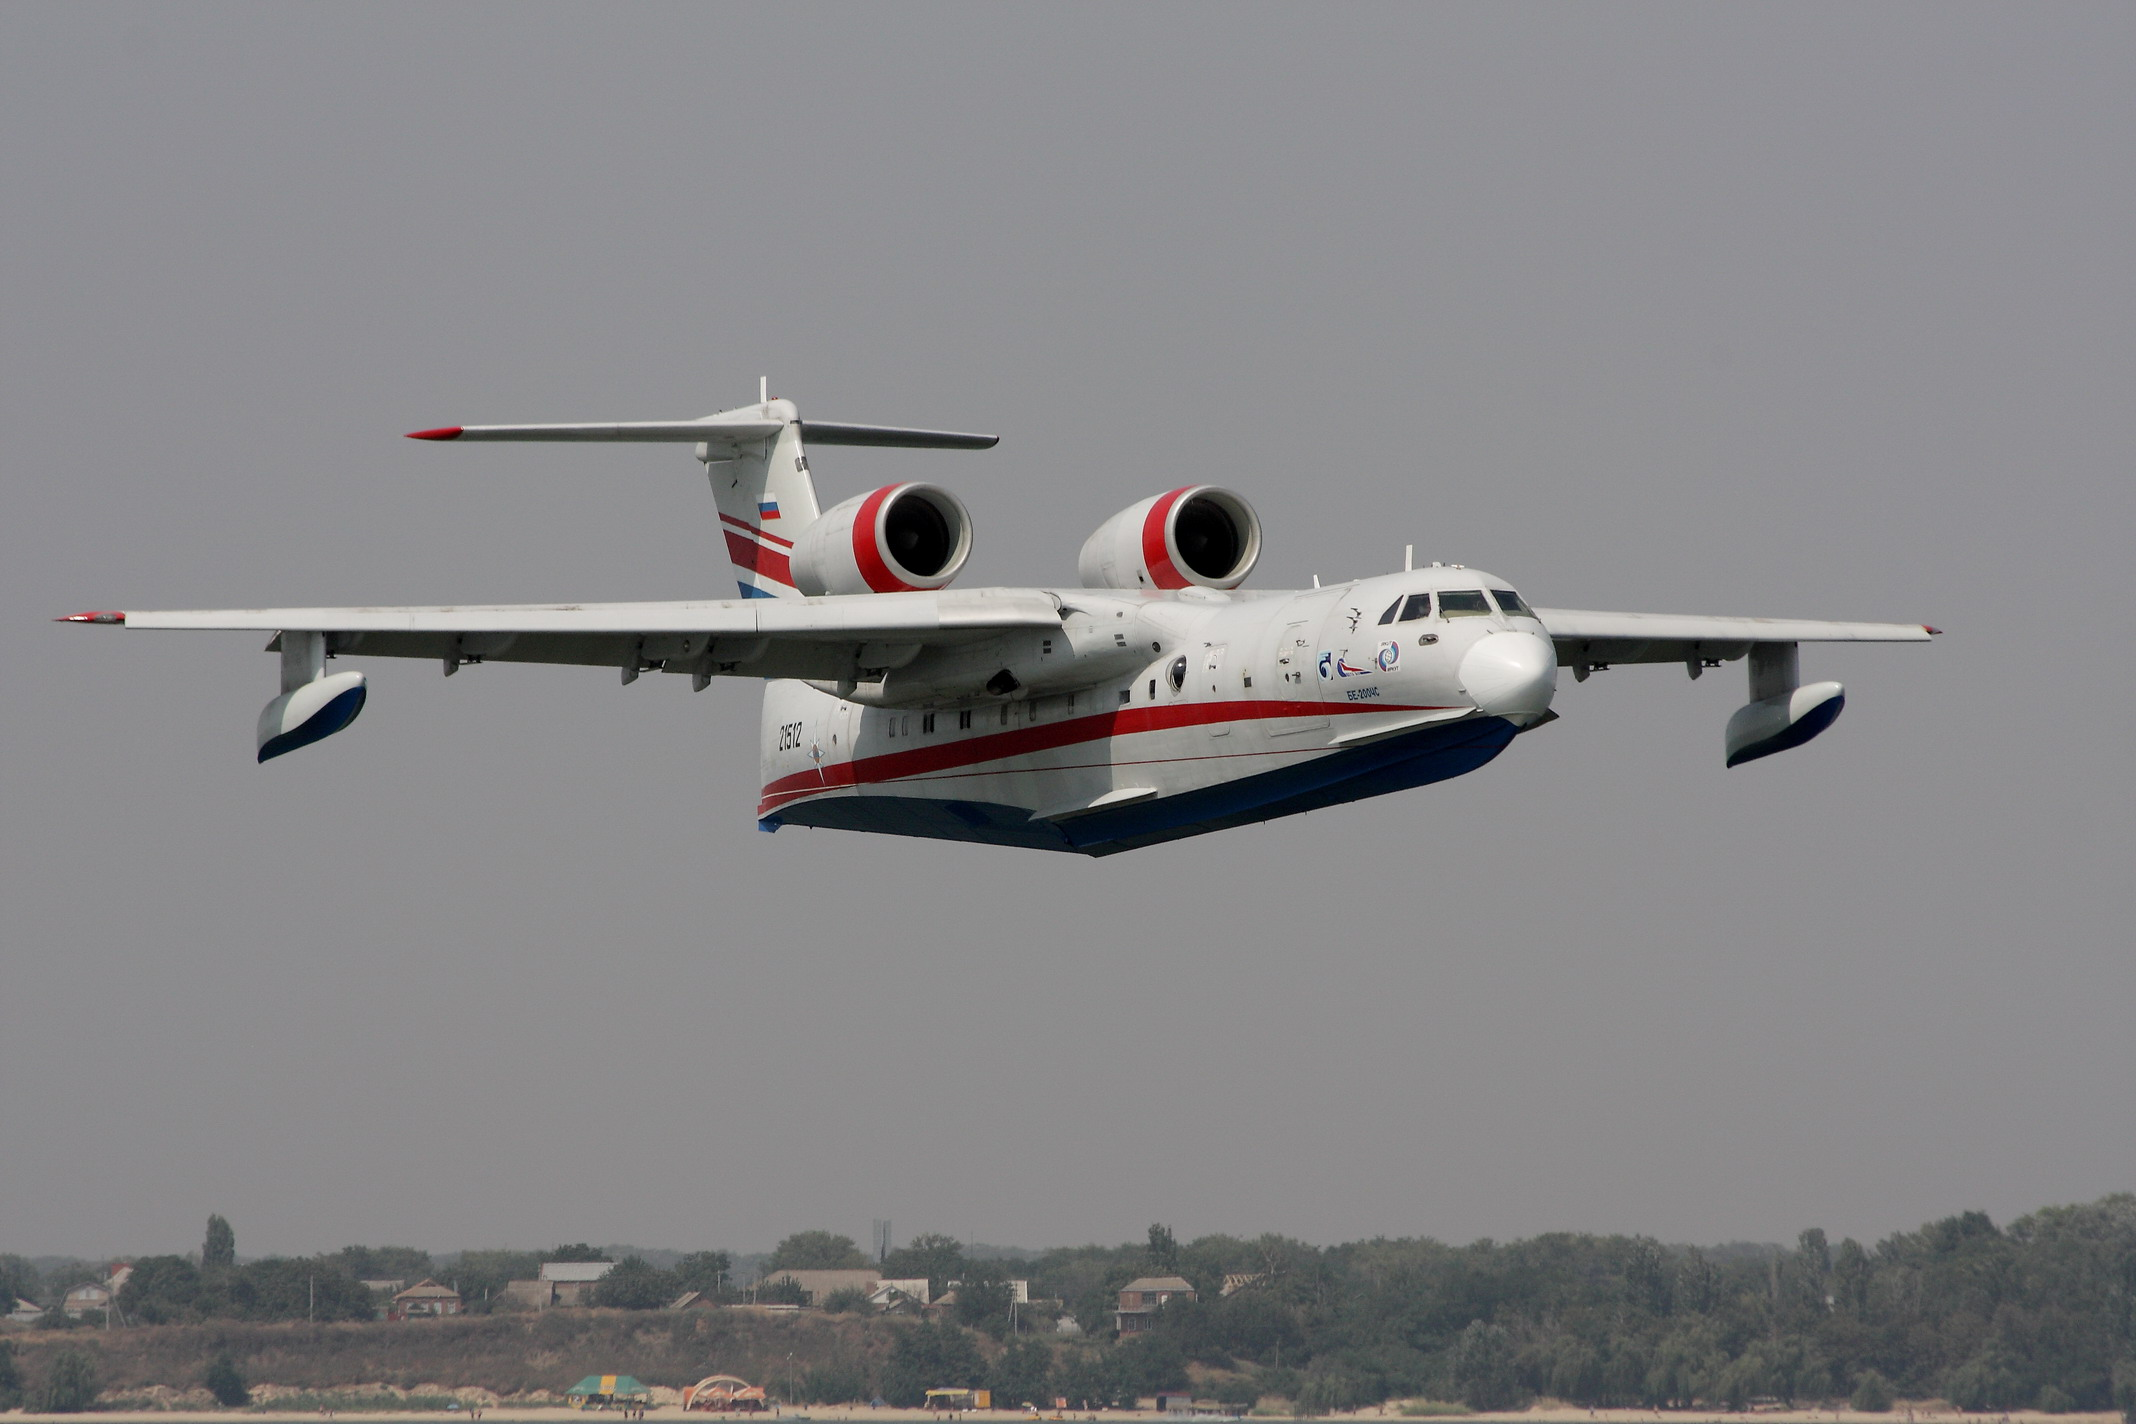 Be-200ES amphibian aircraft of Beriev Aircarft Company participates in forest fire-fighting operations in Russia